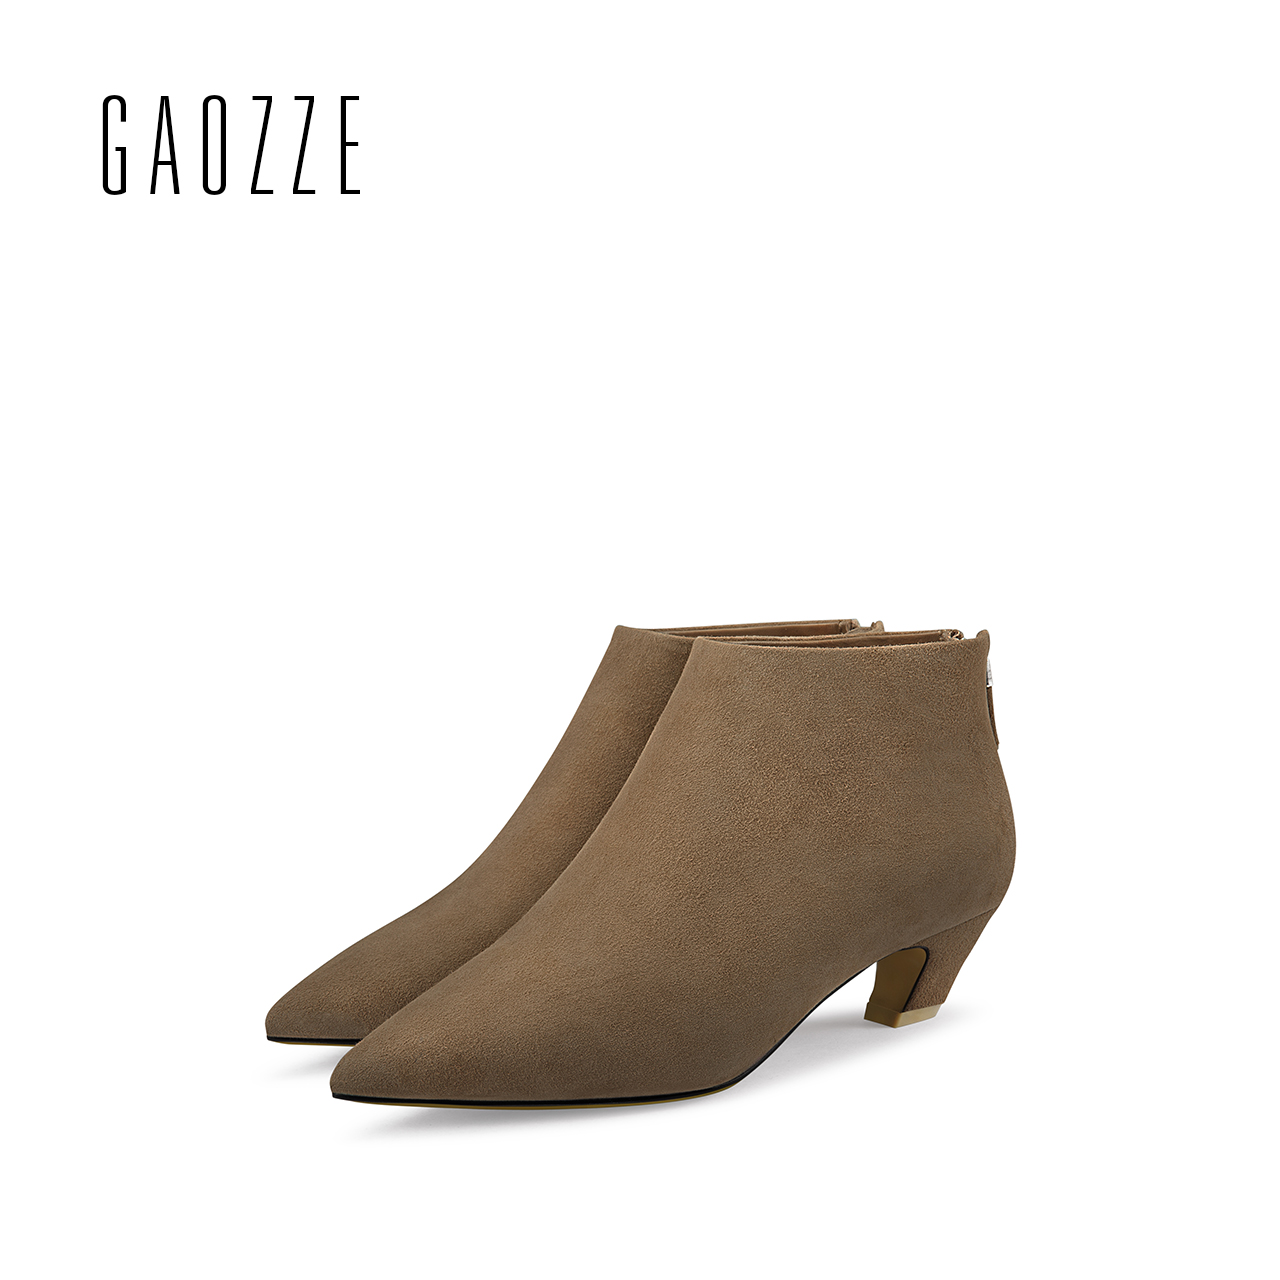 GAOZZE genuine suede leather zipper ankle boots 2018 new Fashion women block heel pointed toe ankle boots comfortable new arrival superstar genuine leather chelsea boots women round toe solid thick heel runway model nude zipper mid calf boots l63